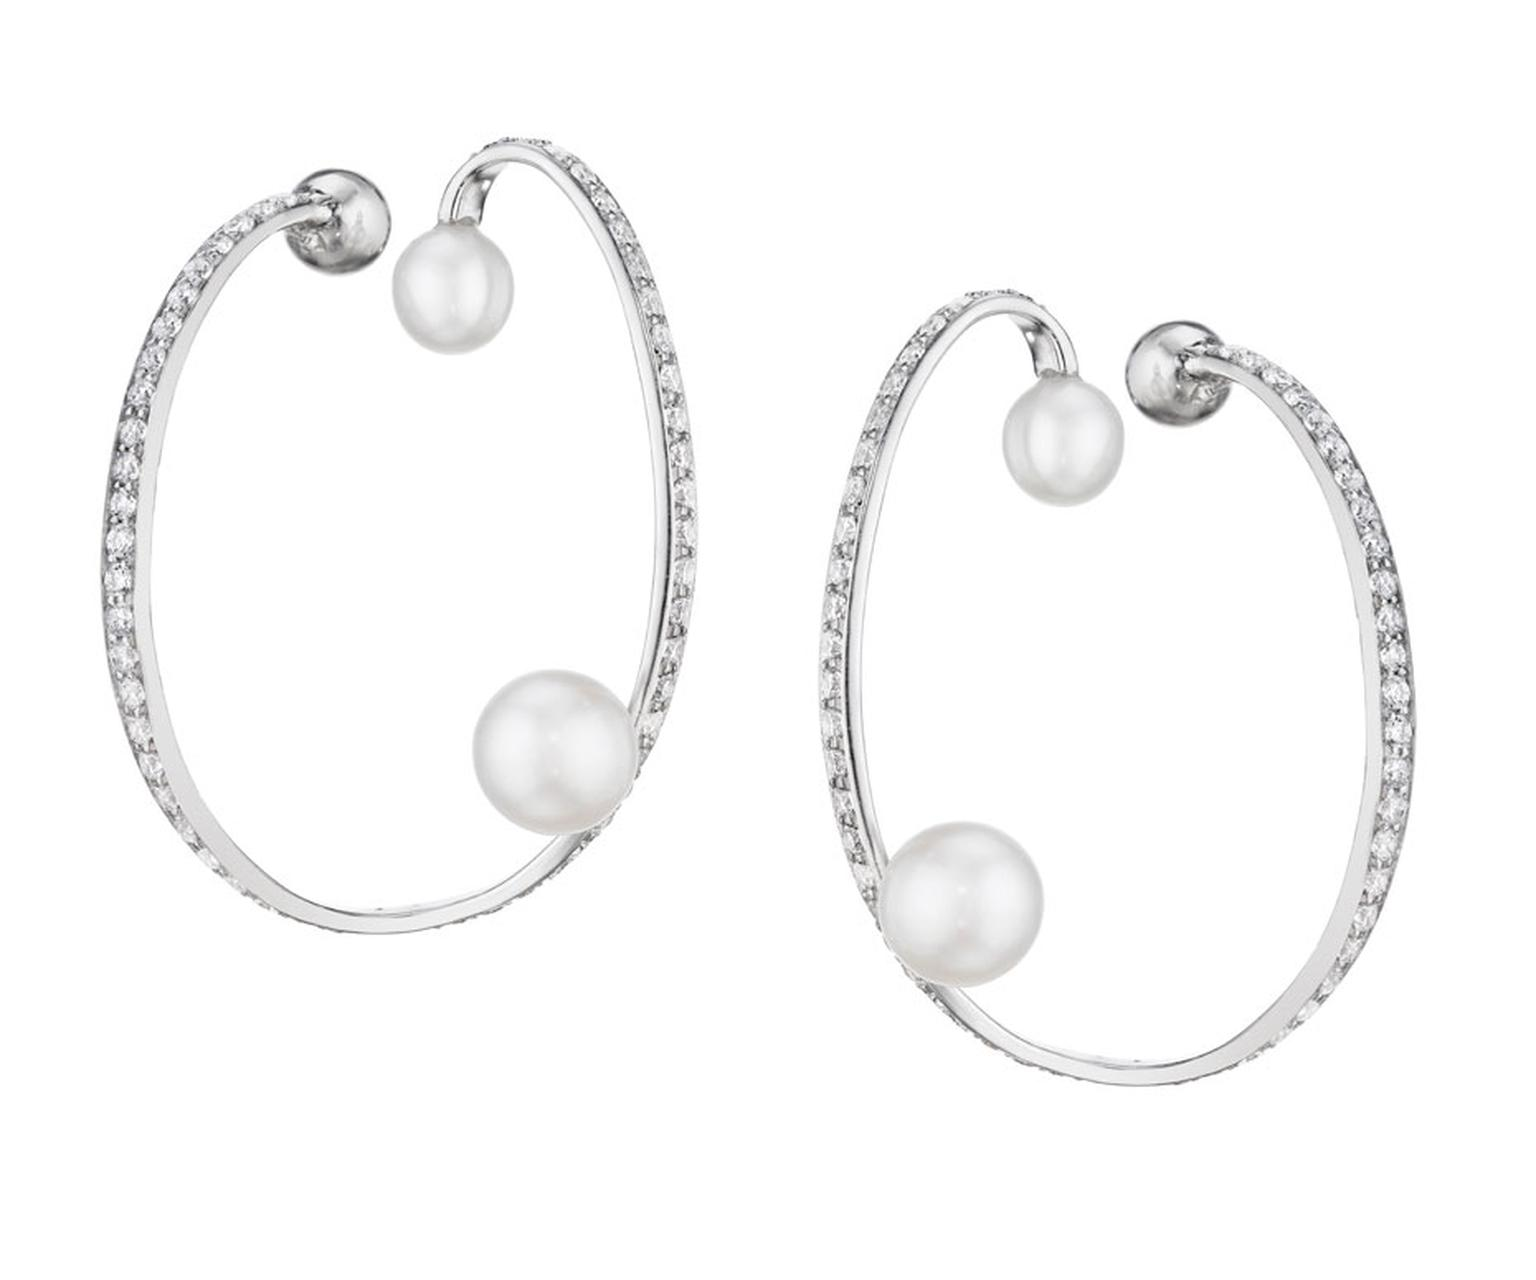 Lynn Ban Ellipse earrings in white gold with pearls and diamonds.